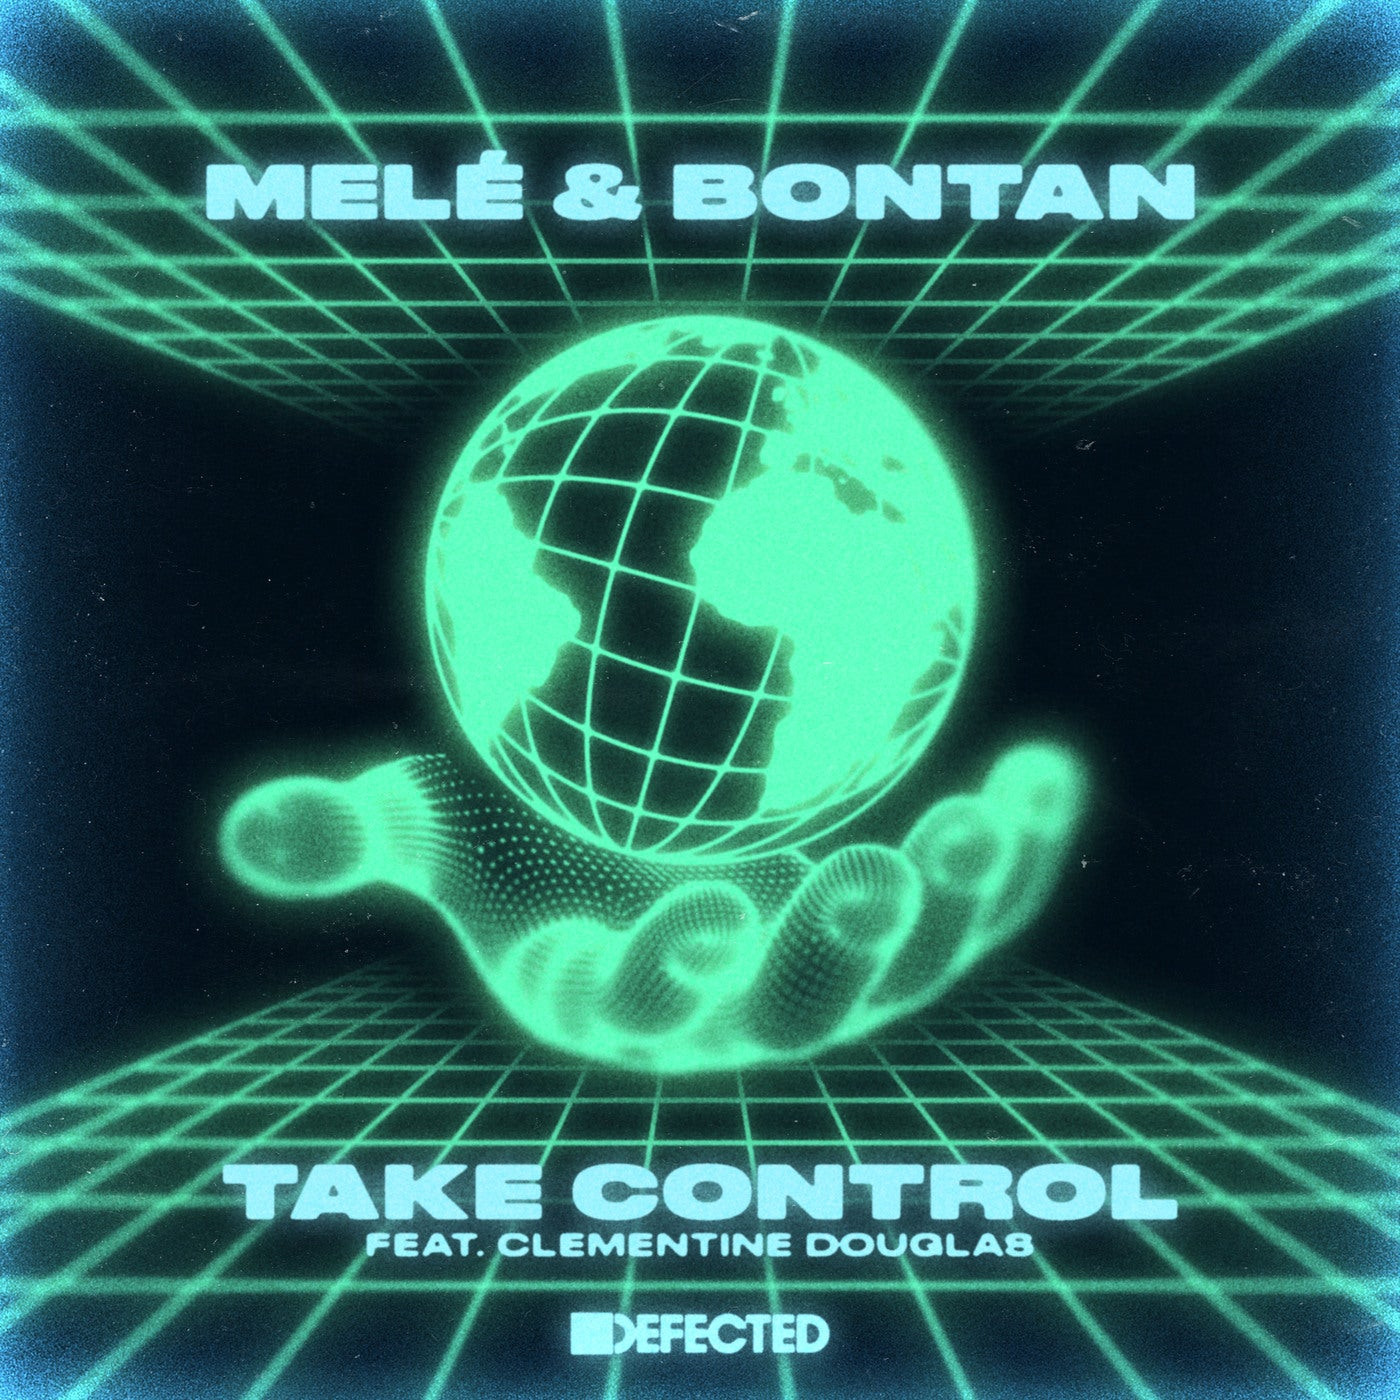 Download Take Control - Extended Mix on Electrobuzz